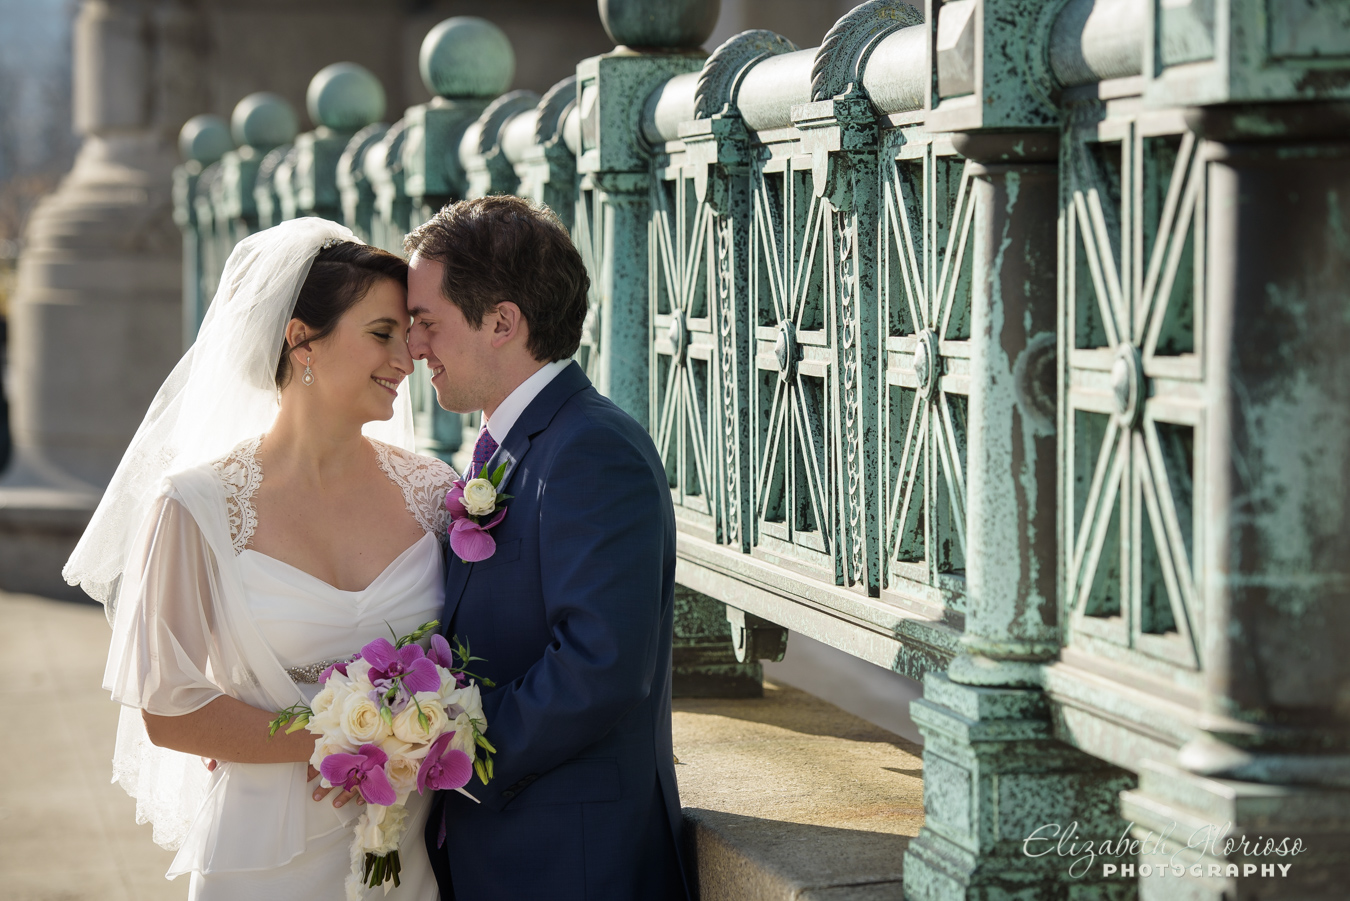 Bride and Groom photo at Cleveland Public Library